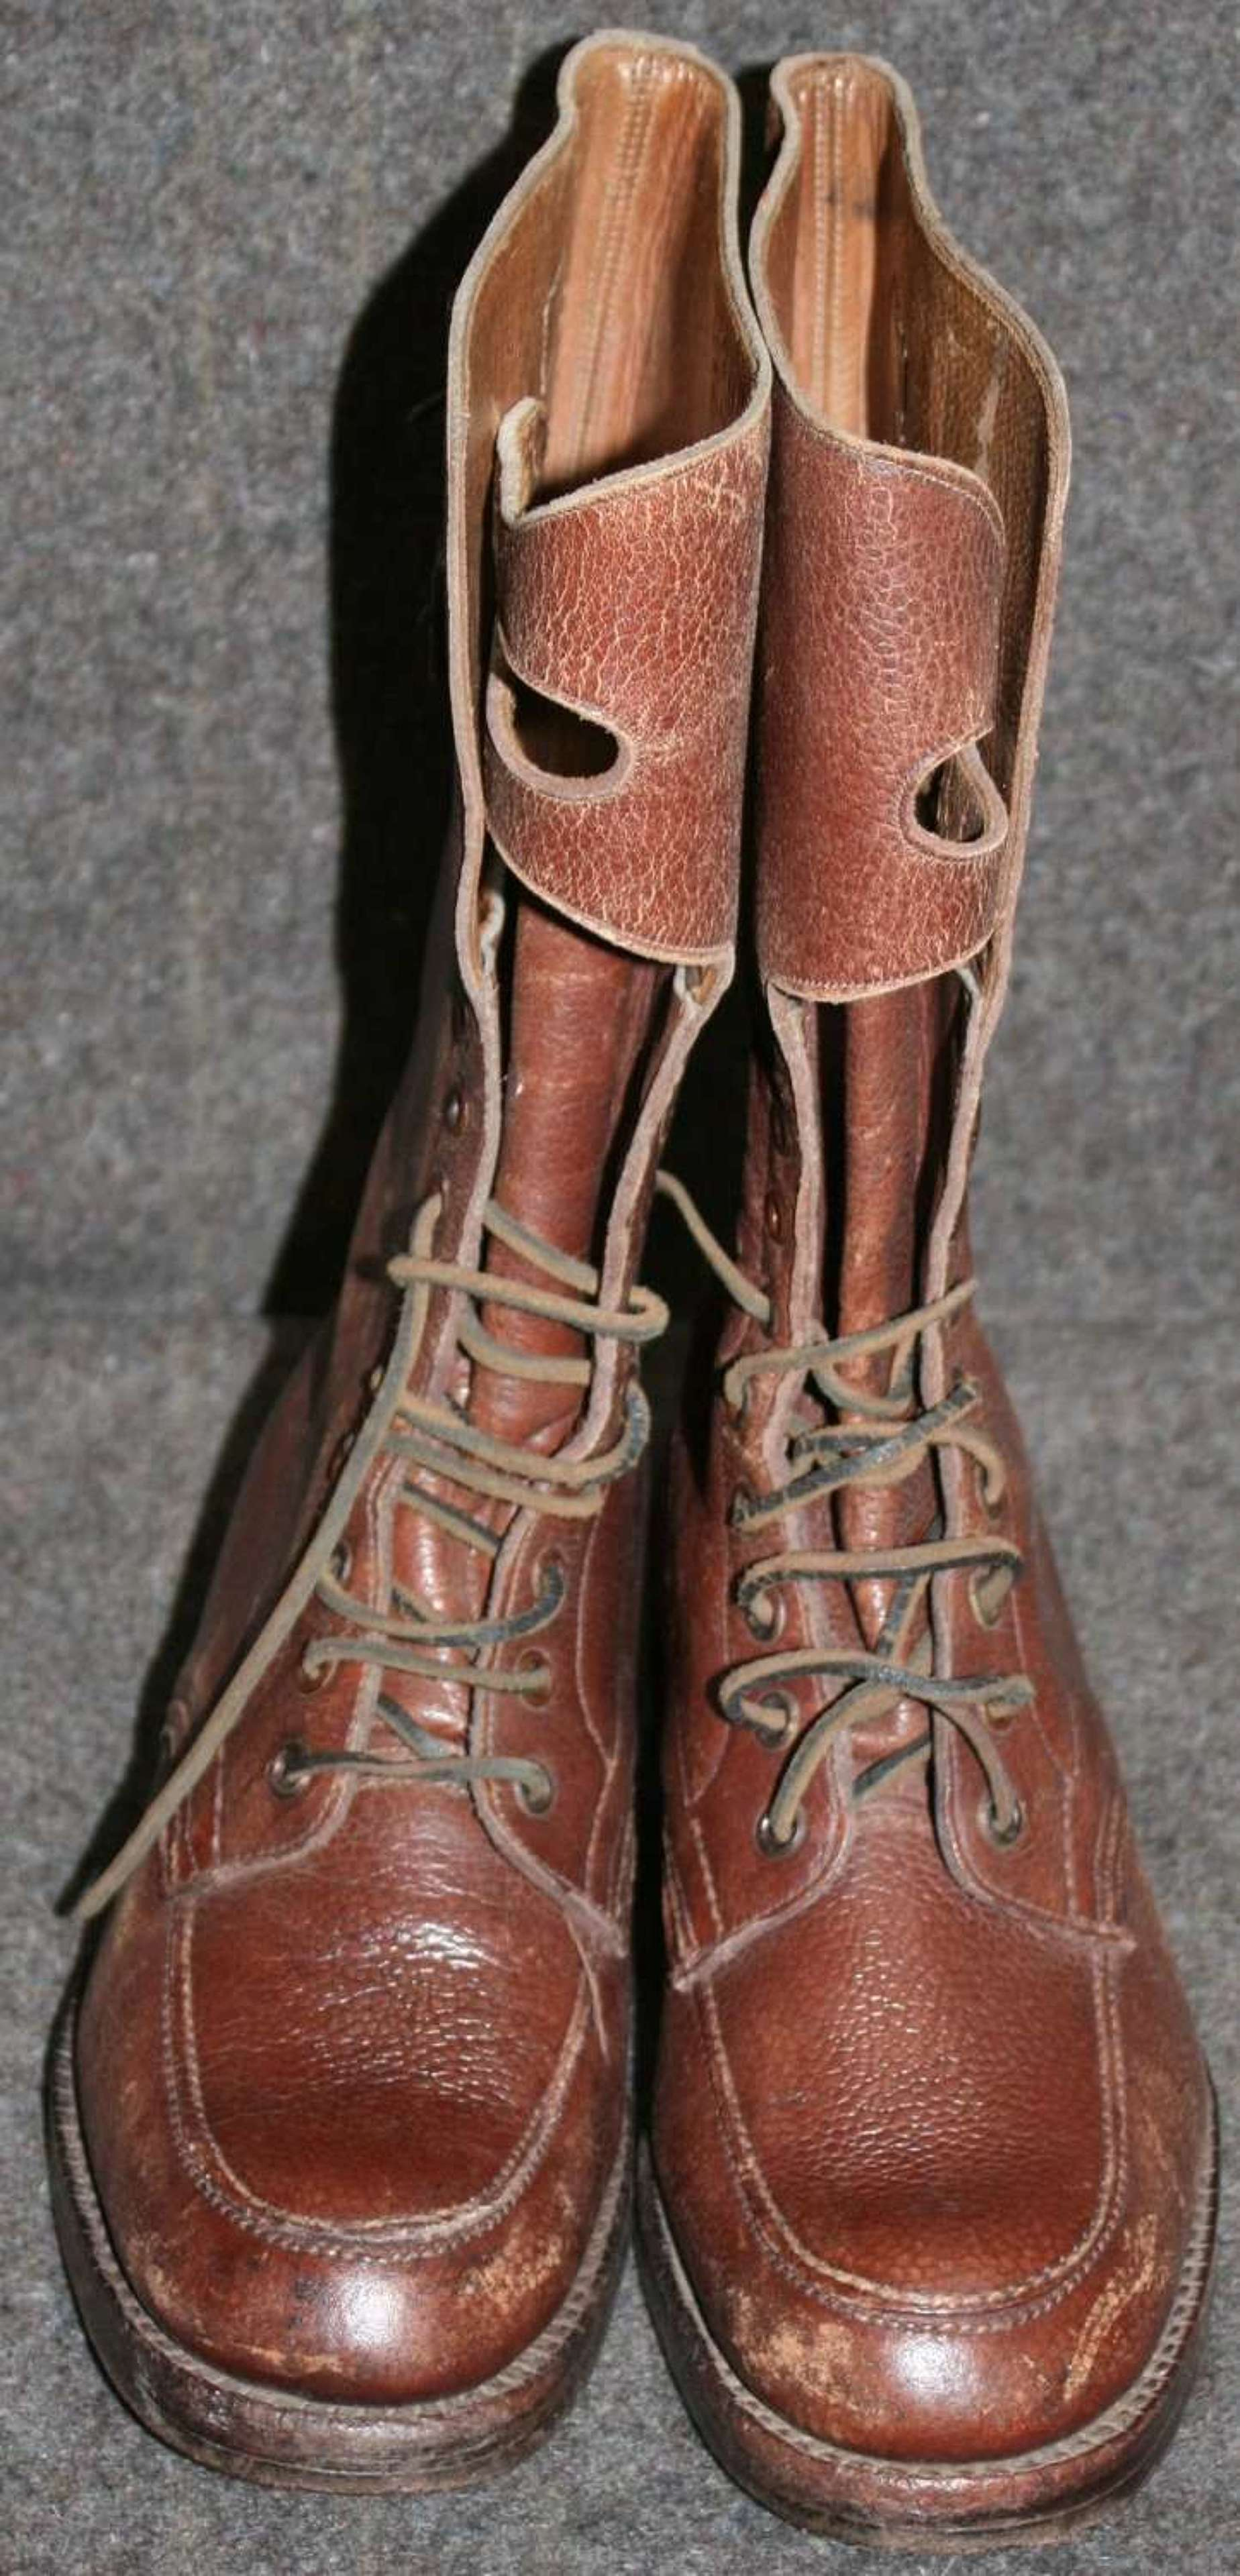 A WWII PAIR OF THE BRITISH OFFICERS HIGH LEG BOOTS